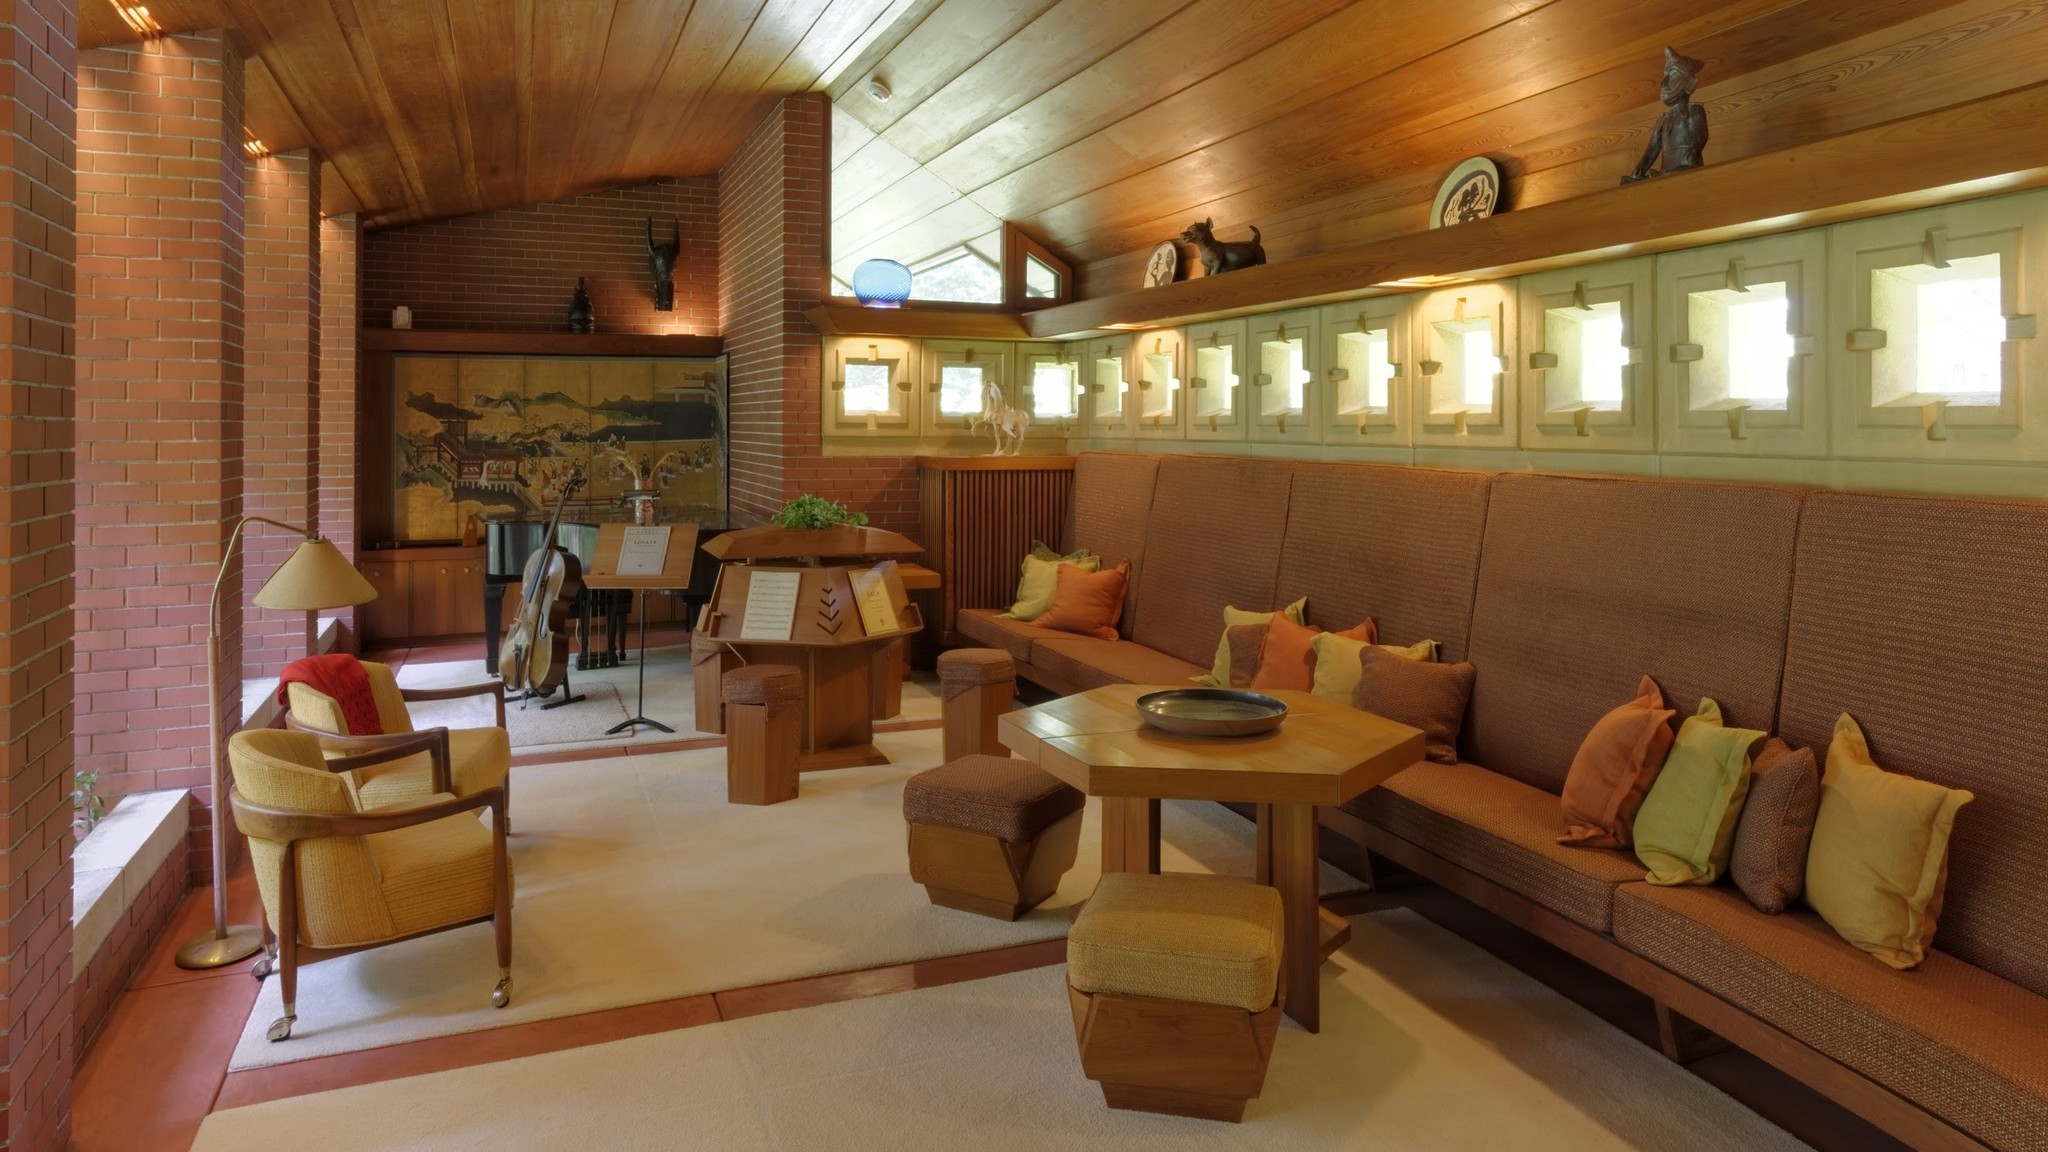 Frank Lloyd Wright designed everything from the exterior to the interior — even the furniture and the mailbox — at the Zimmerman House, part of the Currier Museum of Art.